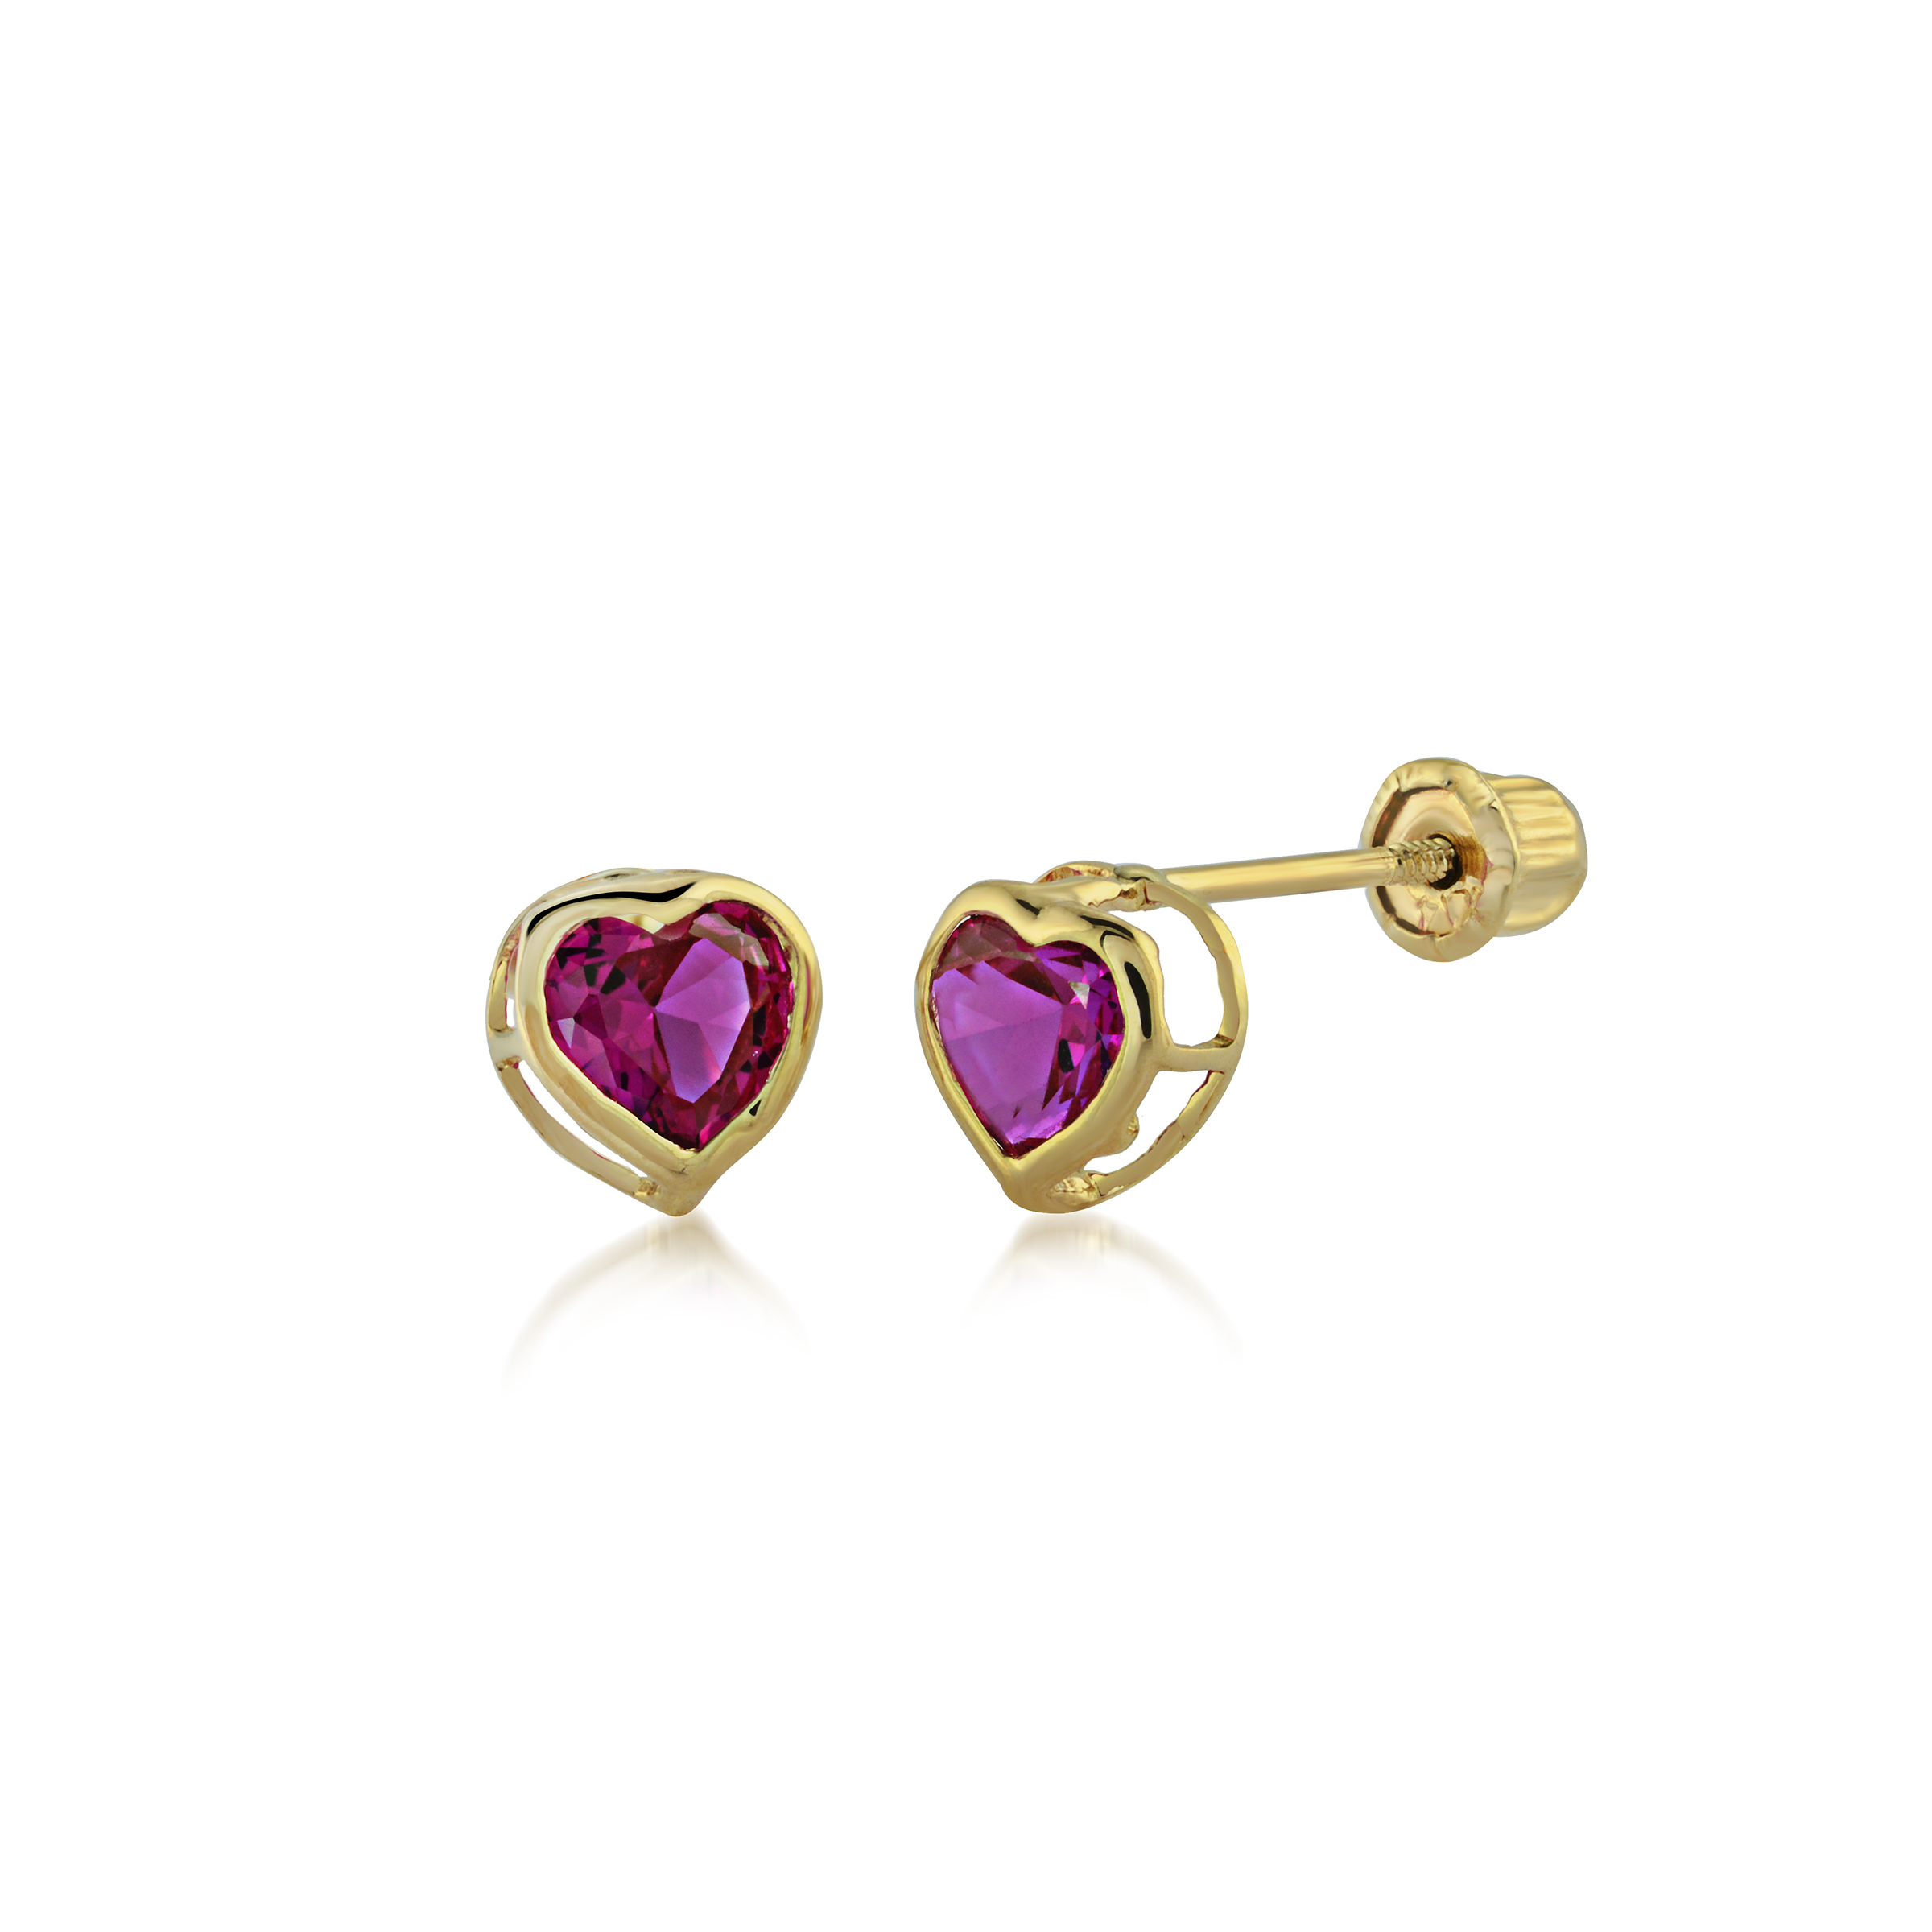 Heart earrings in gold with dark pink cubic zirconia